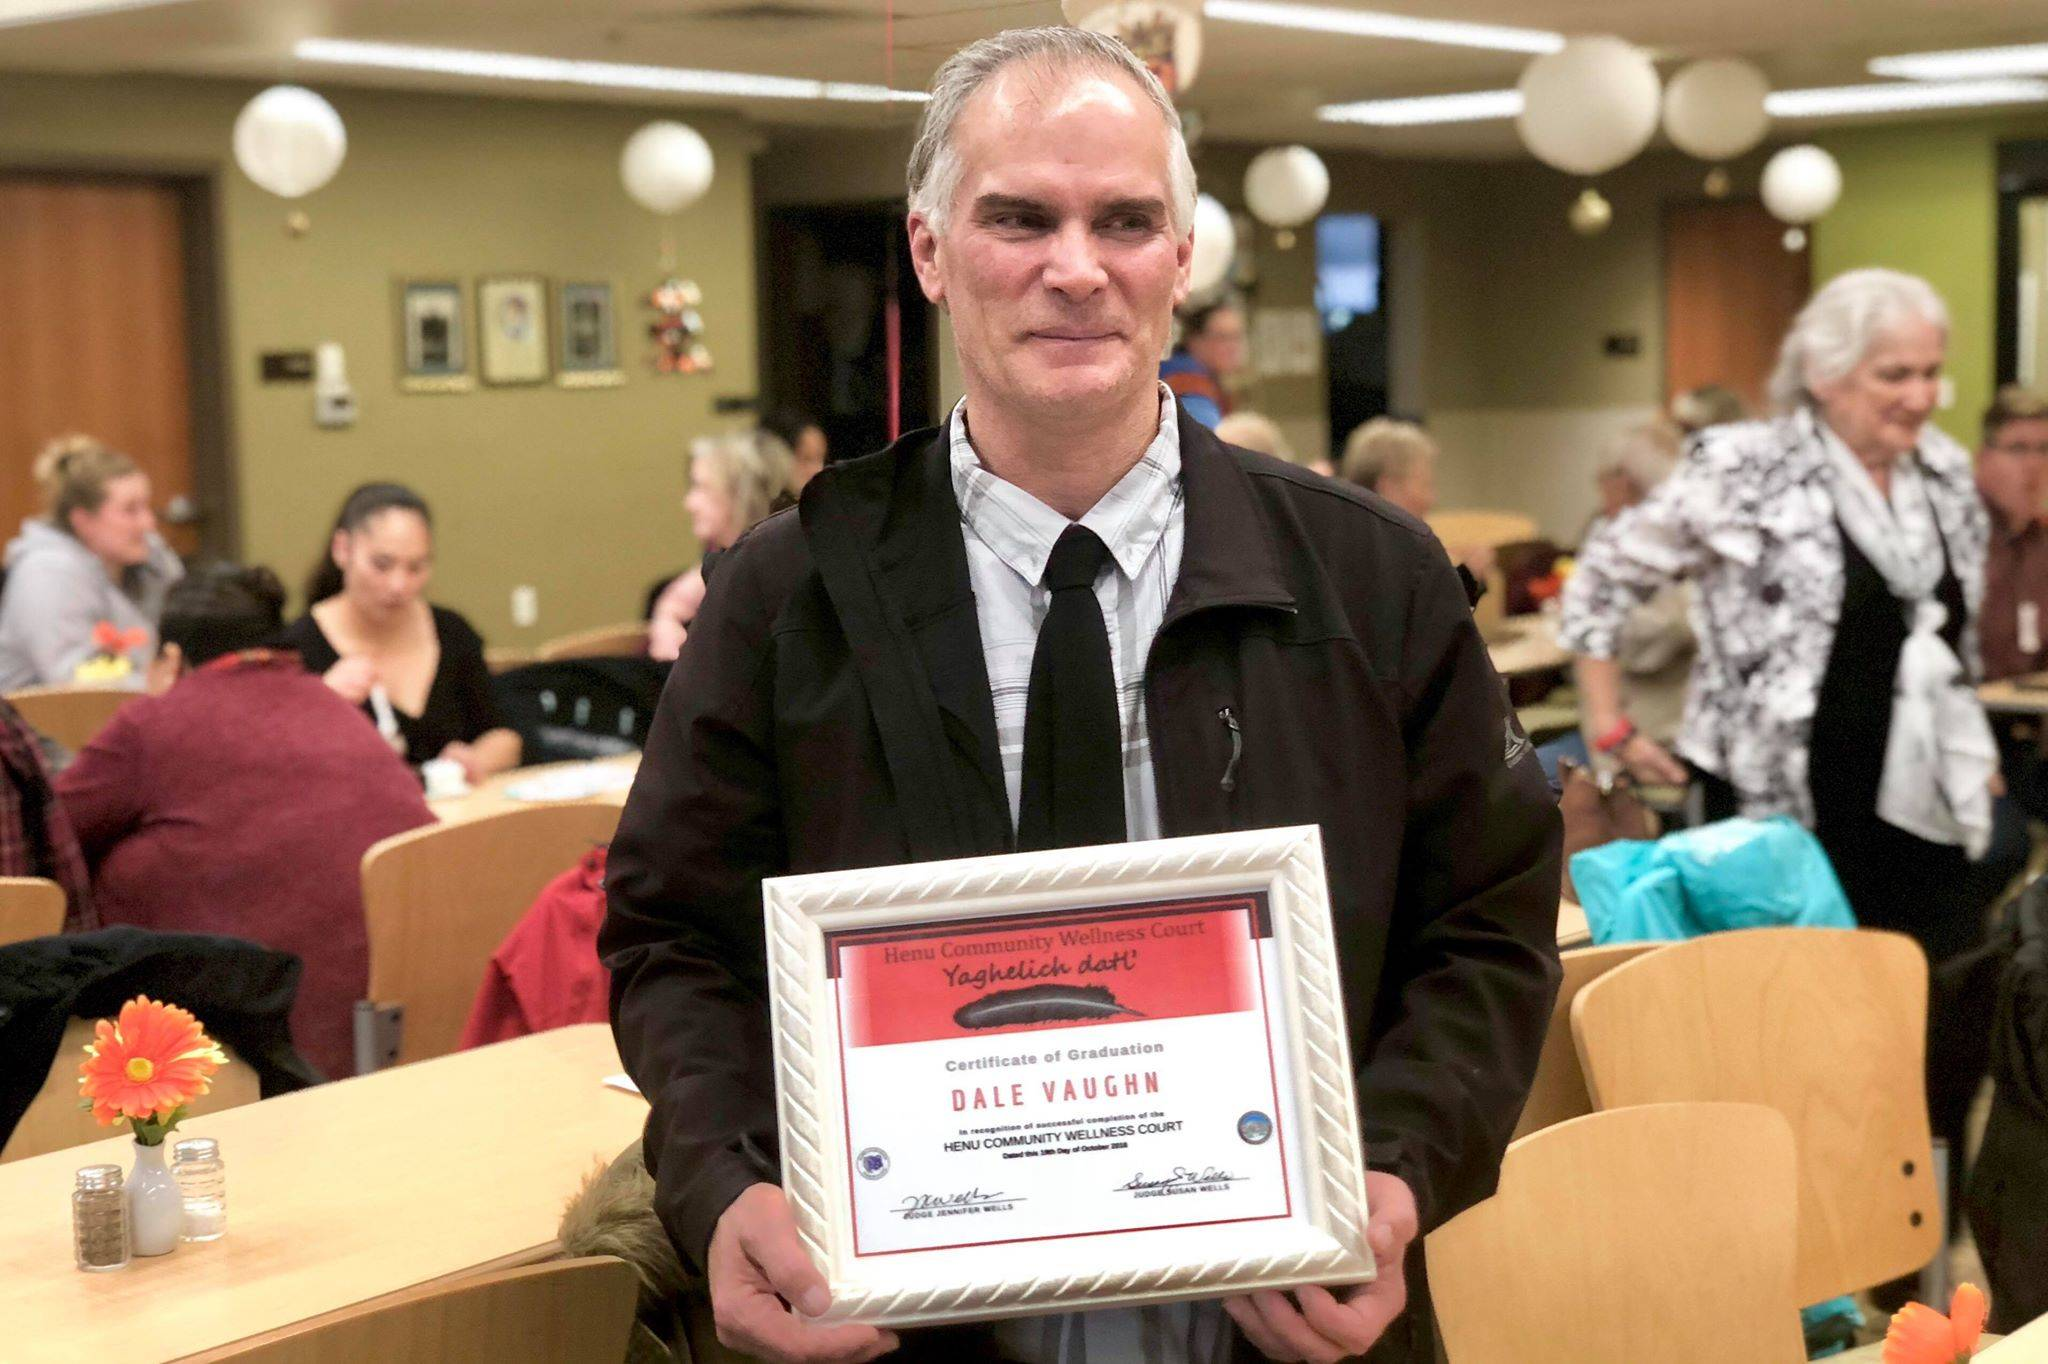 Dale Vaughn, is one of the first graduates of the Kenaitze Indian Tribe's Henu' Community Wellness Court program, on Friday, Oct. 19, 2018, in Kenai, AK. (Photo by Victoria Petersen/Peninsula Clarion)